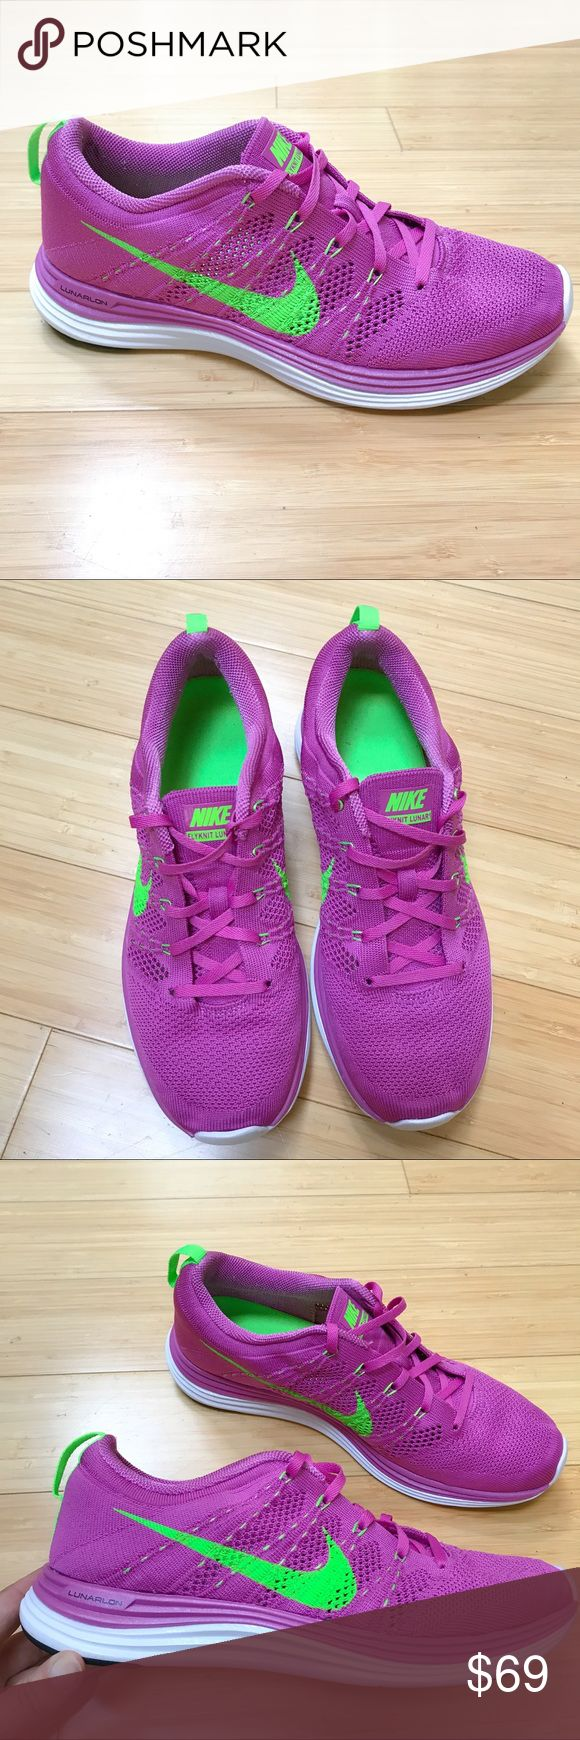 NIKE Flyknit Lunar 1 running sneakers, 9.5. New without box pink and green pair of Nike Flyknit Lunar 1 running sneakers, Lunarlon, size US 9.5. Tried on only, never worn outside, perfect condition. Nike Shoes Sneakers